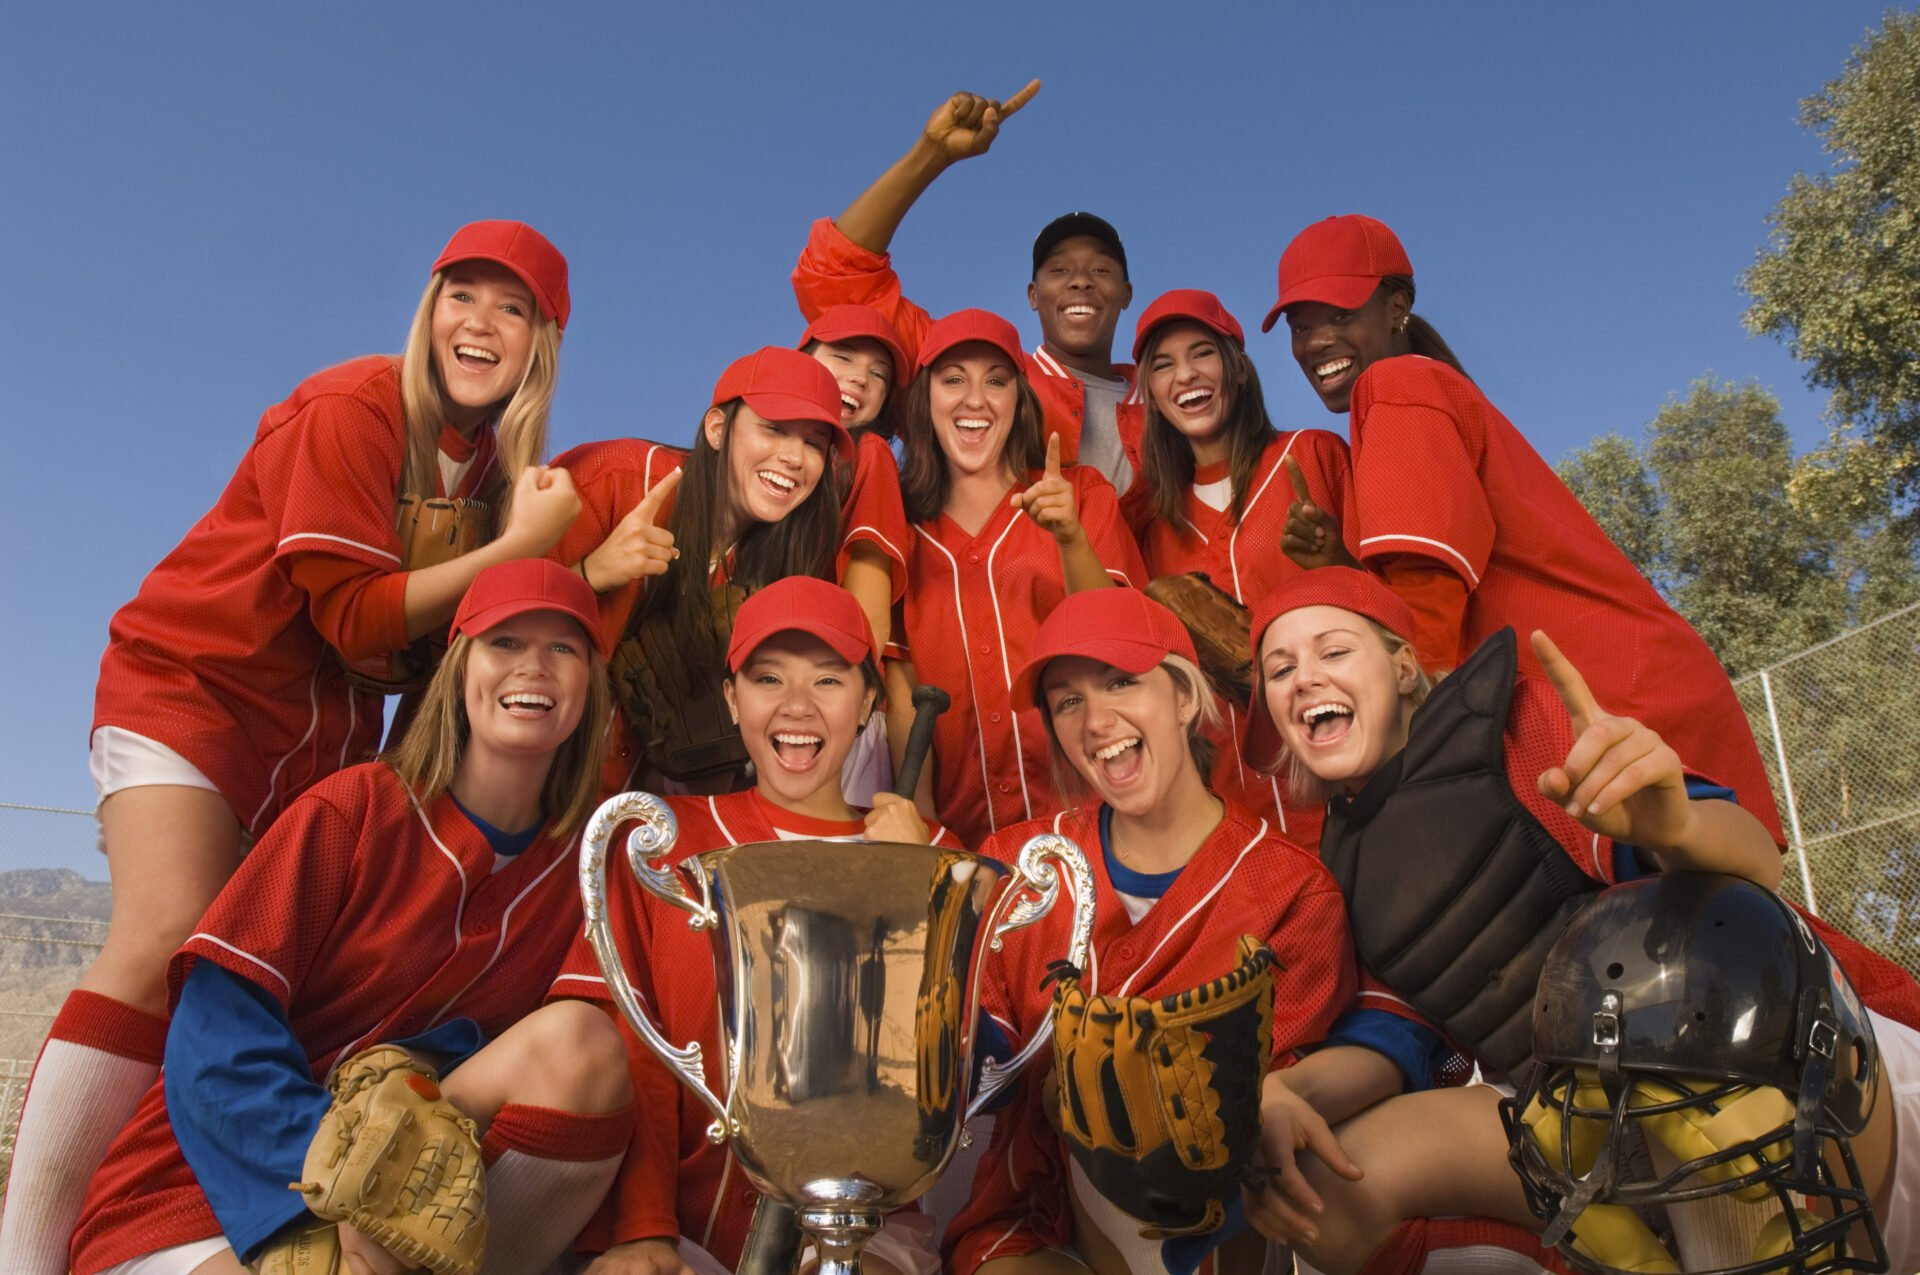 Victorious Softball Team picture